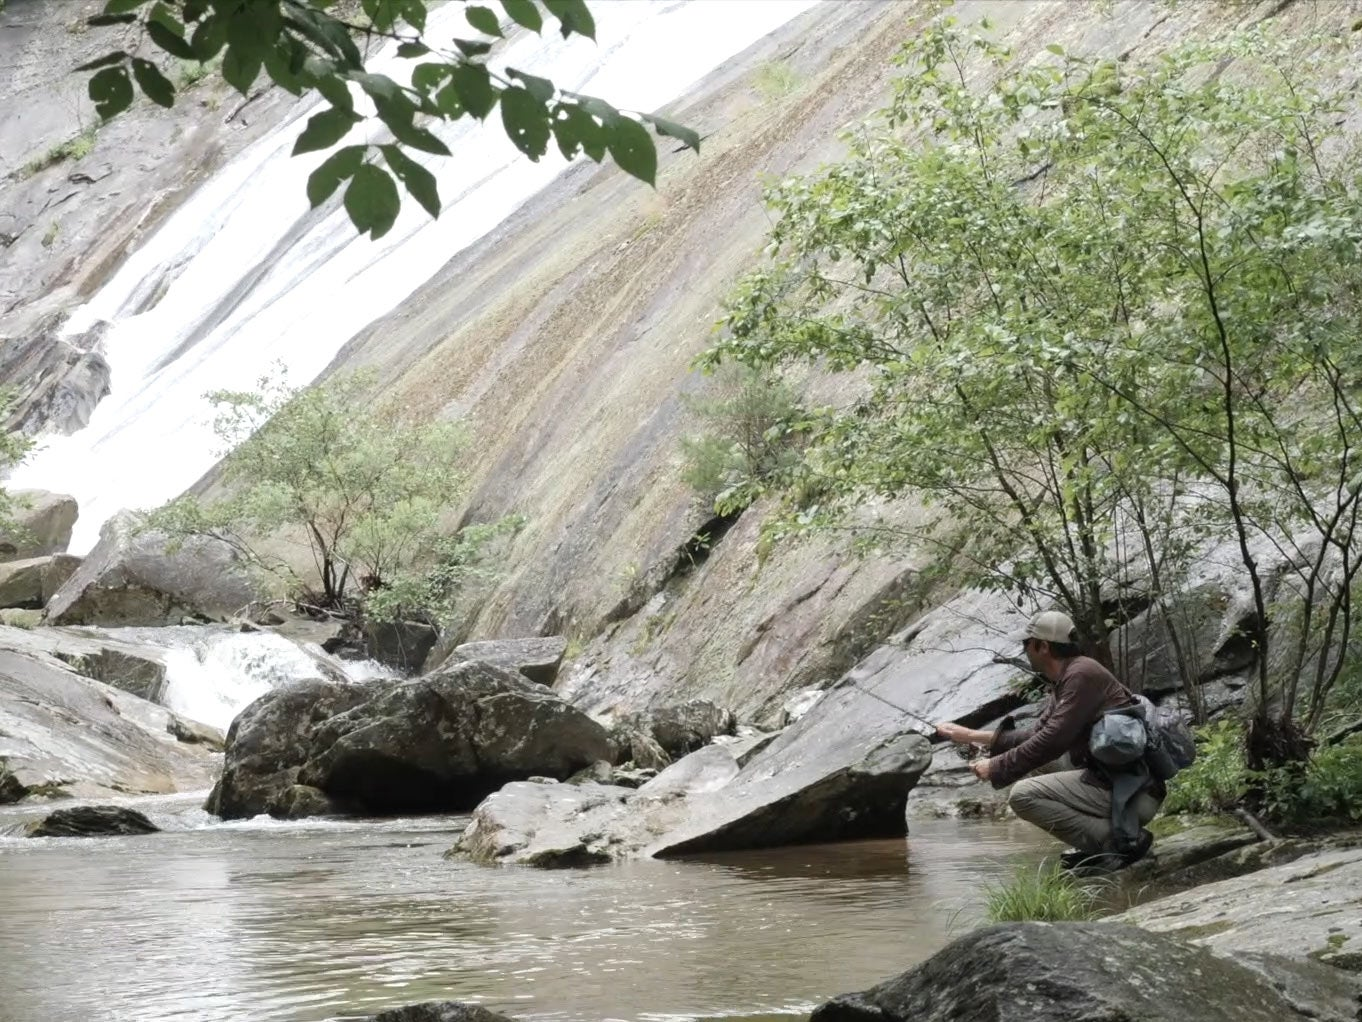 An angler fishing for trout near a waterfall and river.